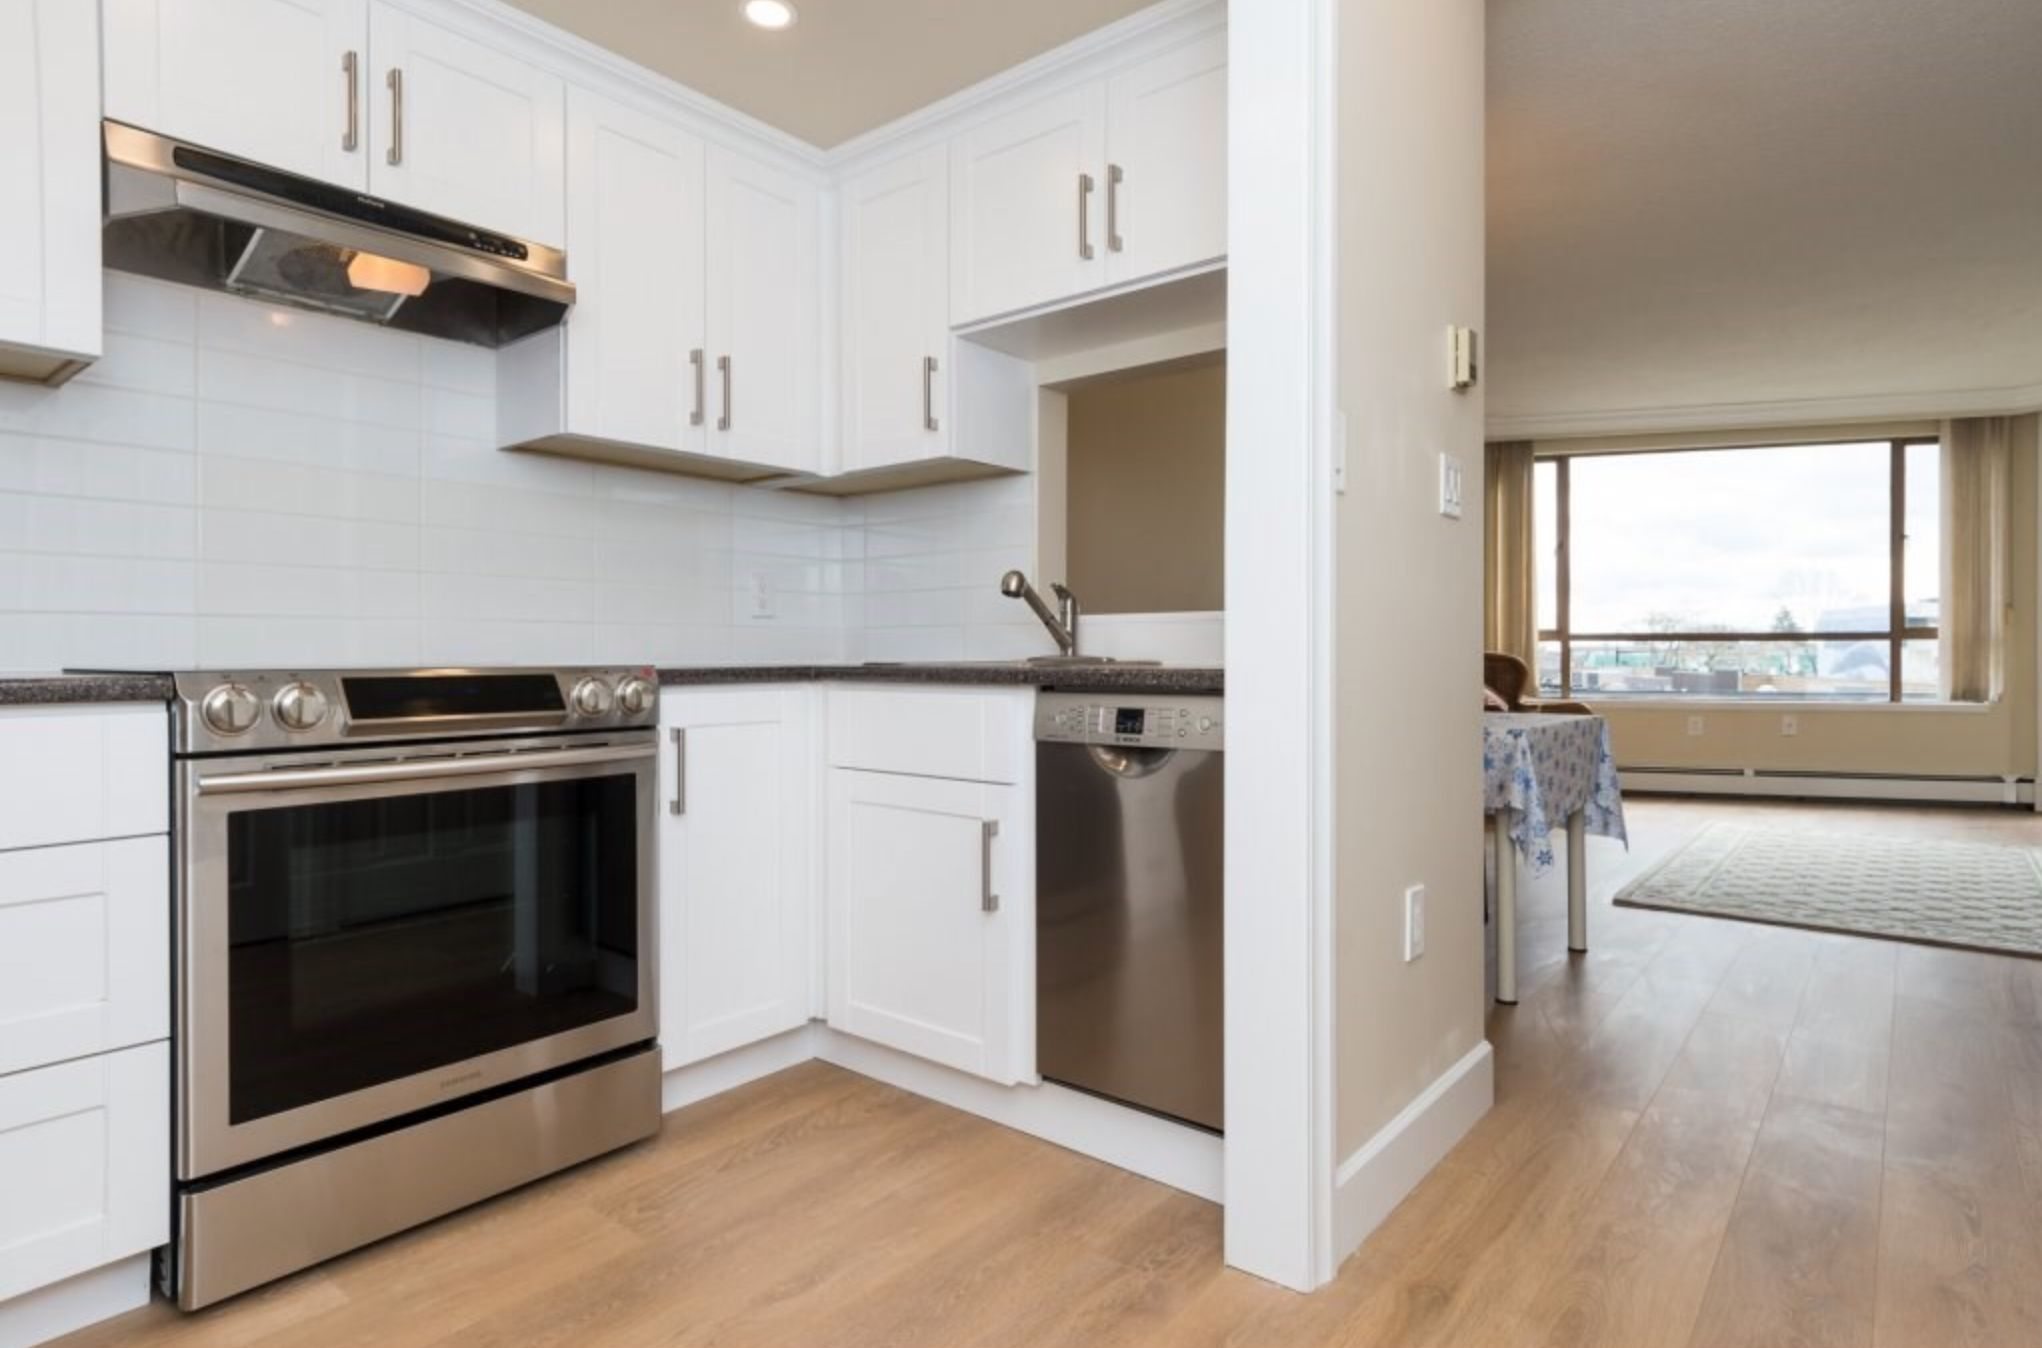 Photo 3: Photos: 410, 15111 Russell Avenue: White Rock Condo for sale (South Surrey White Rock)  : MLS®# R2152299